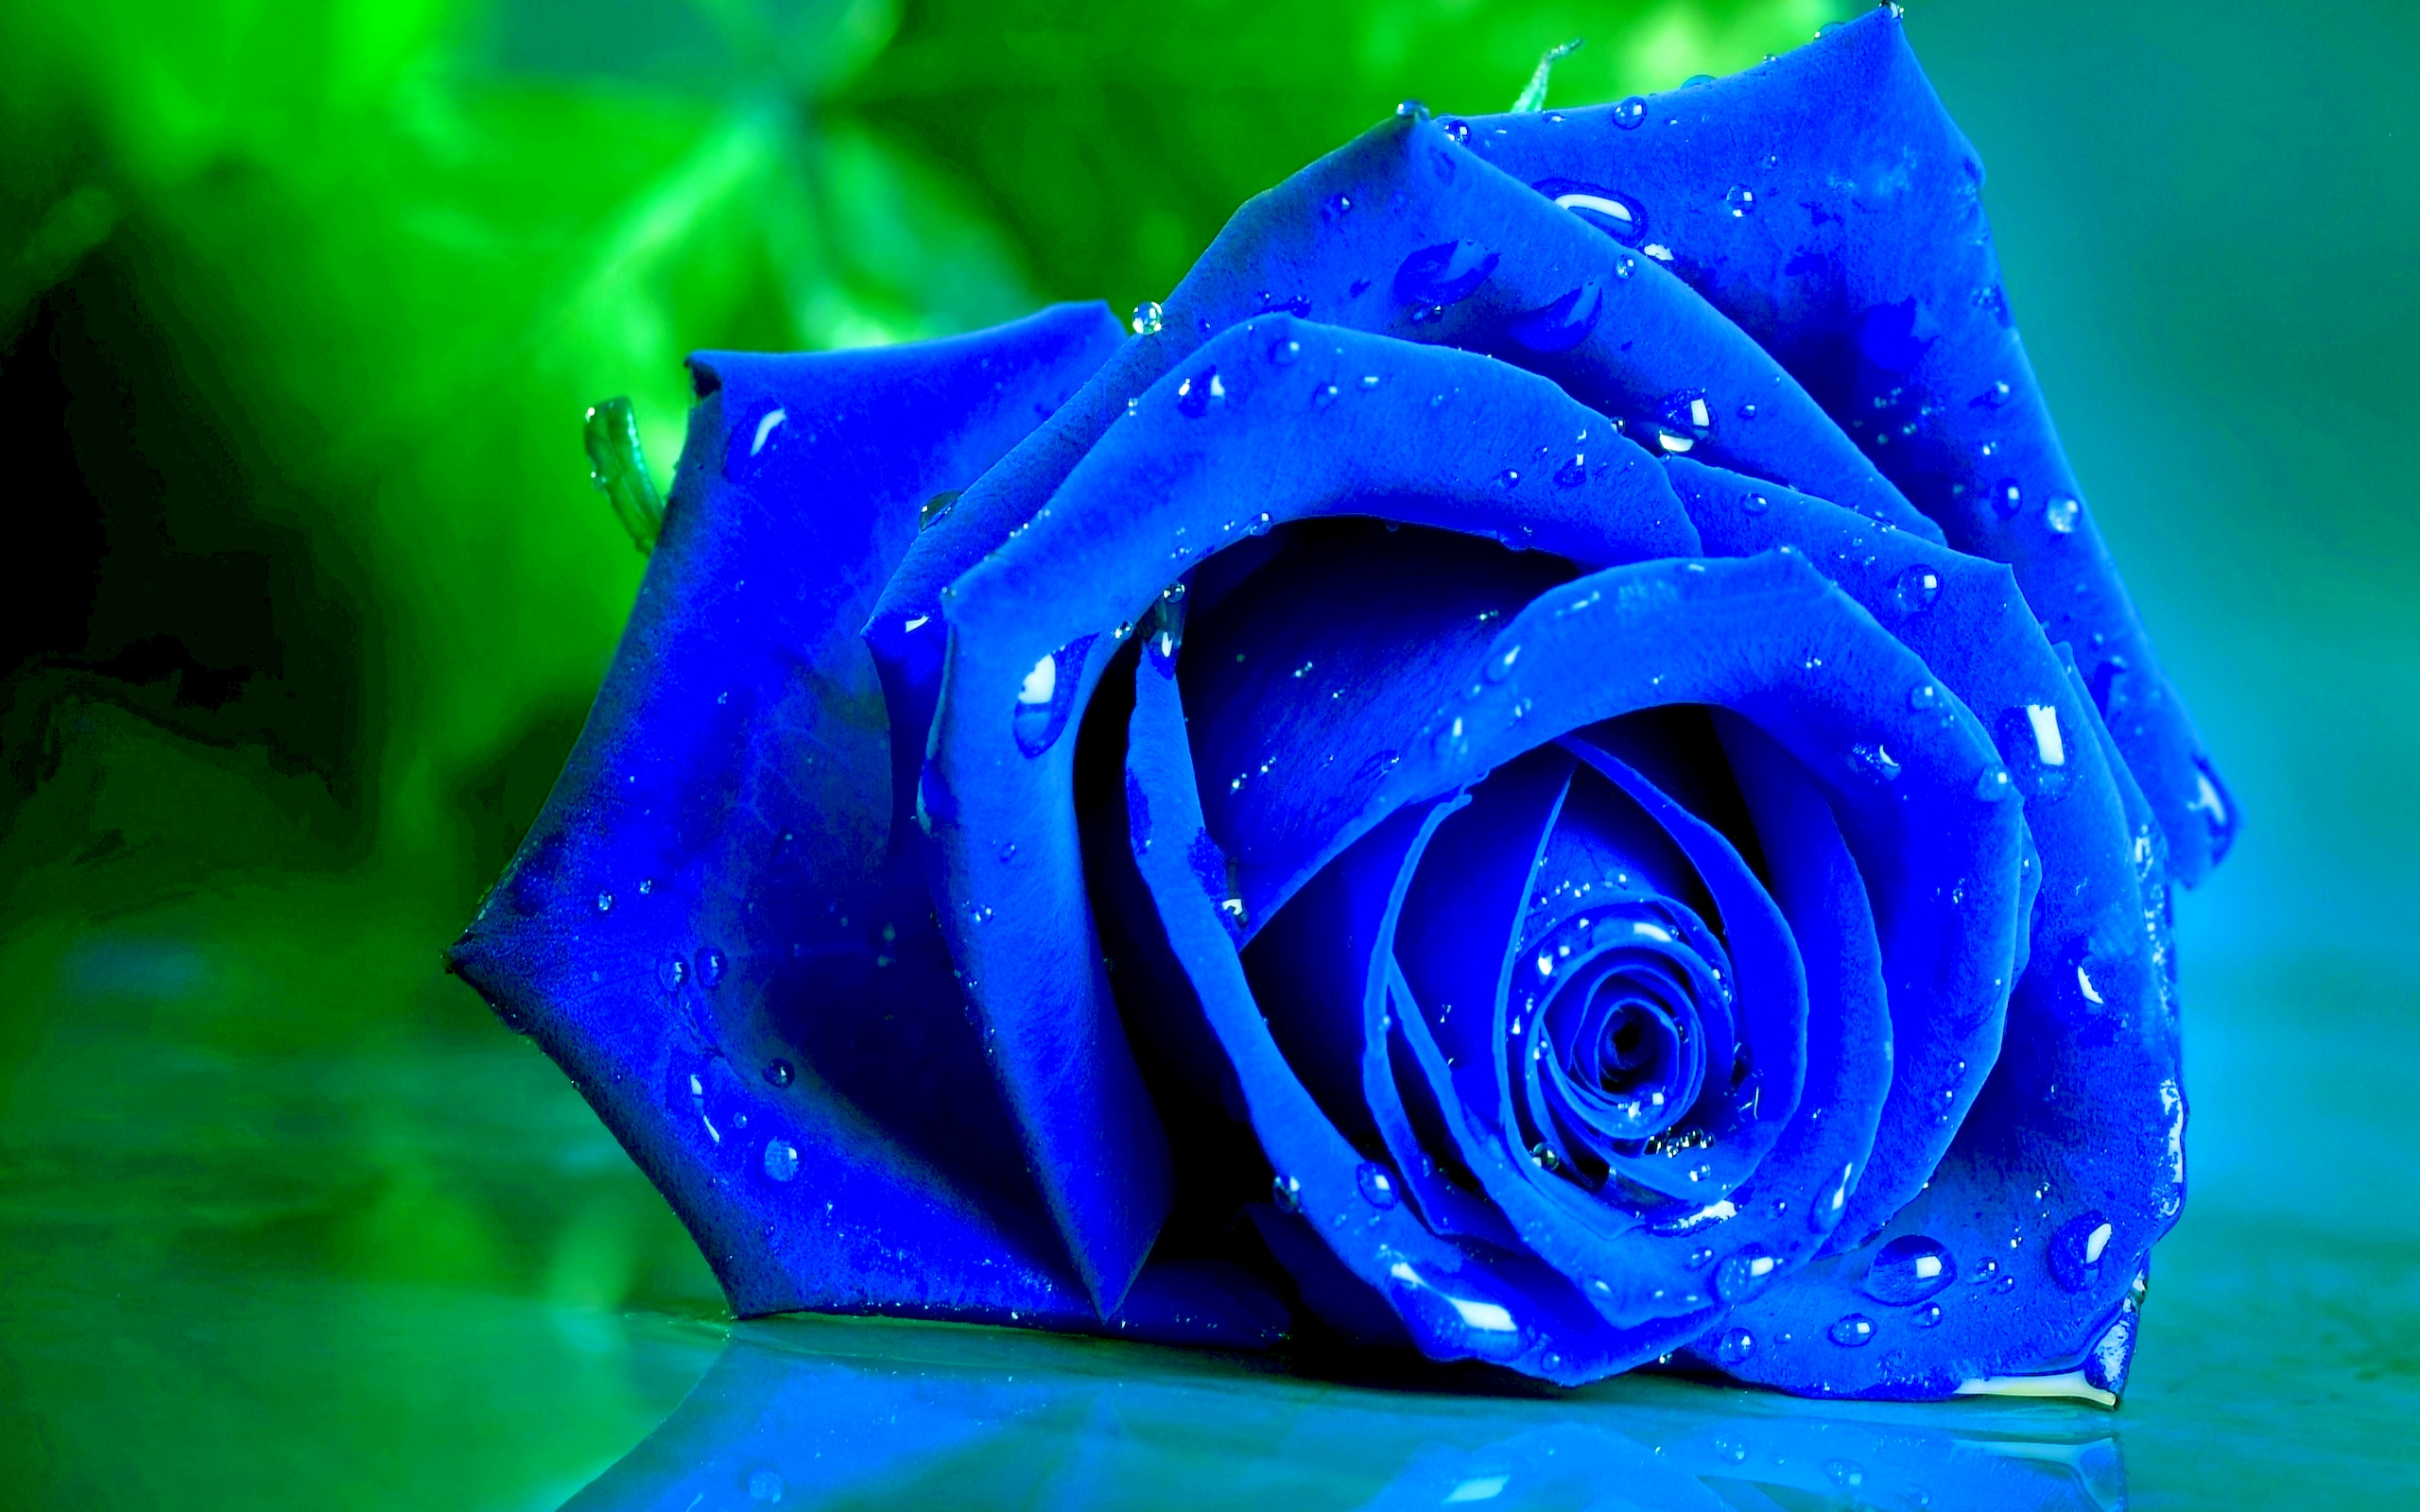 Blue Rose - Blue Roses With Water Drops , HD Wallpaper & Backgrounds